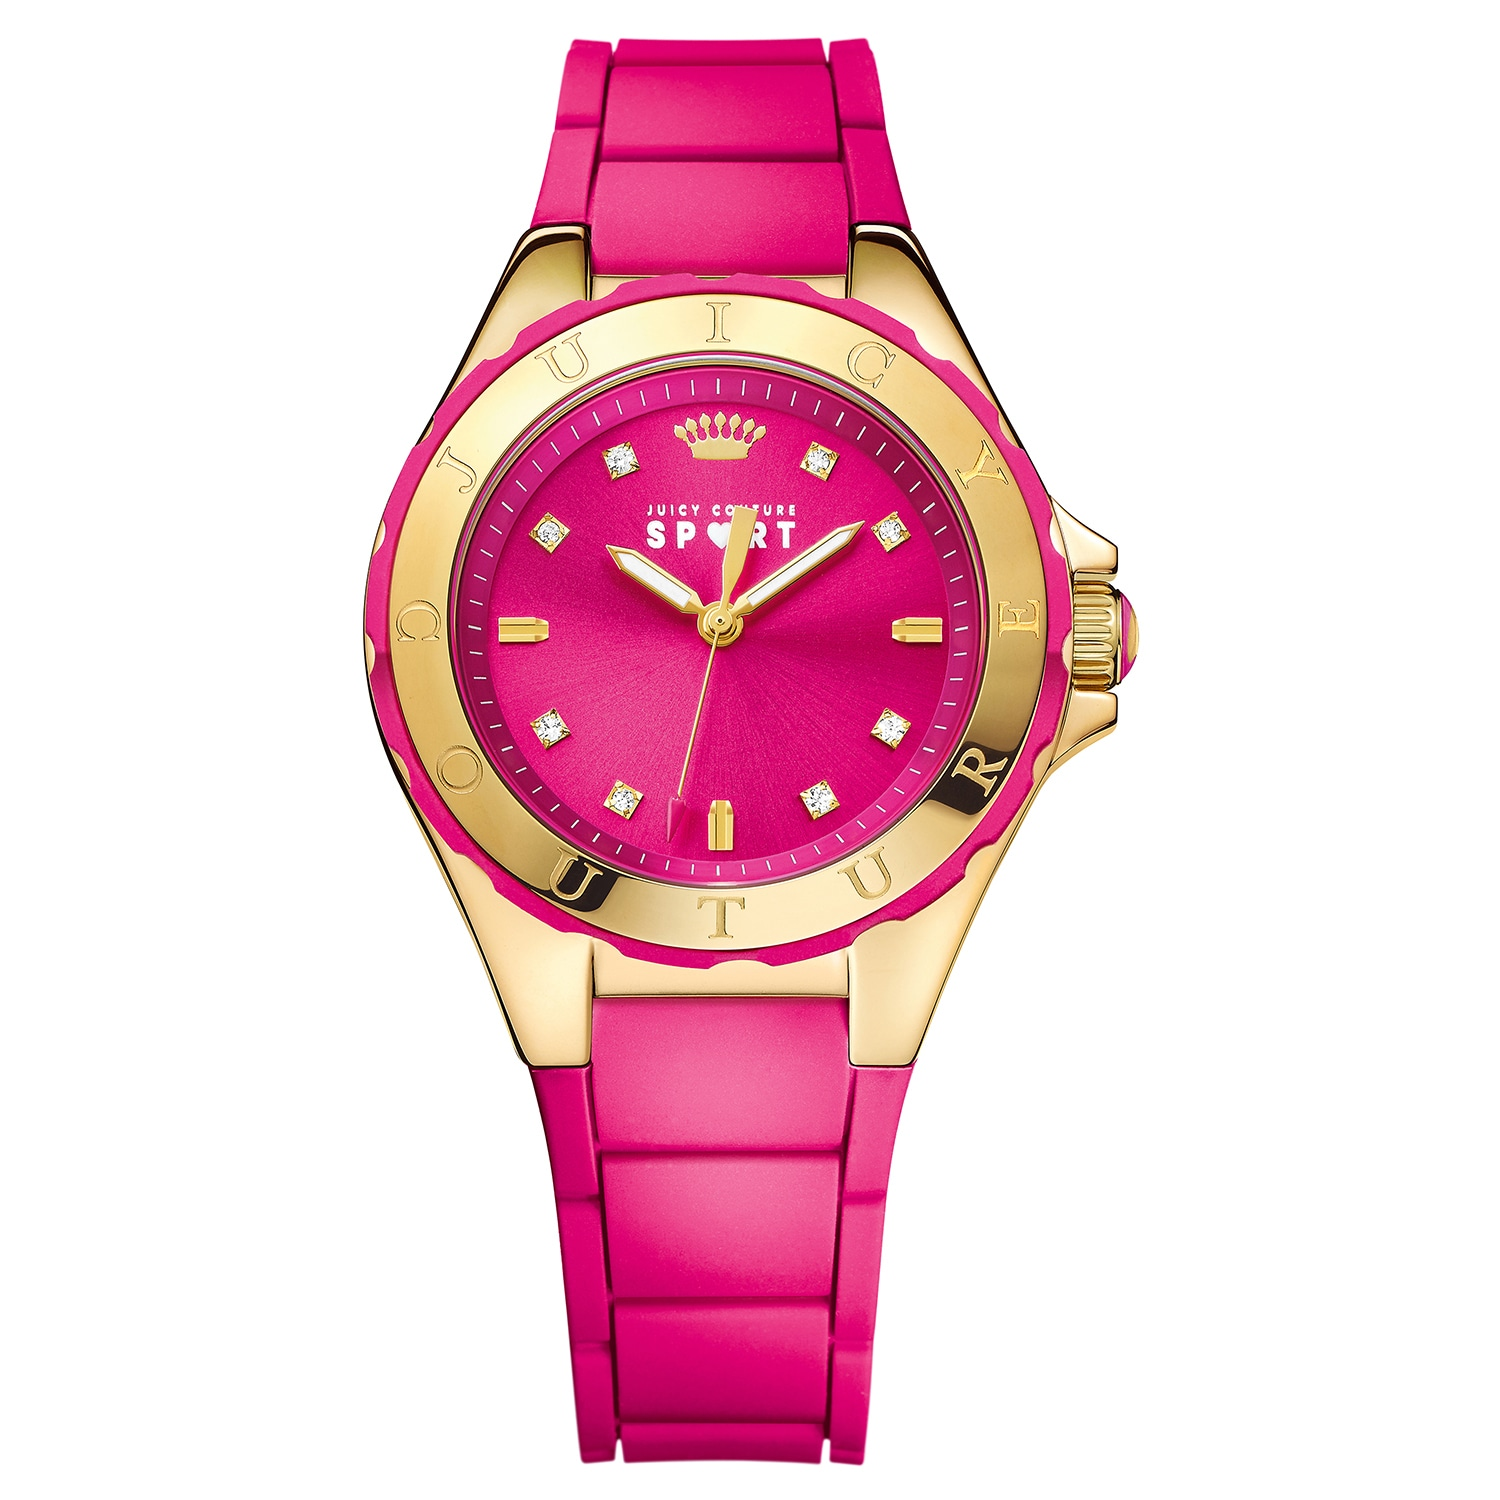 Juicy Couture Women's Rio 1901412 Rubber Watch (Watches),...